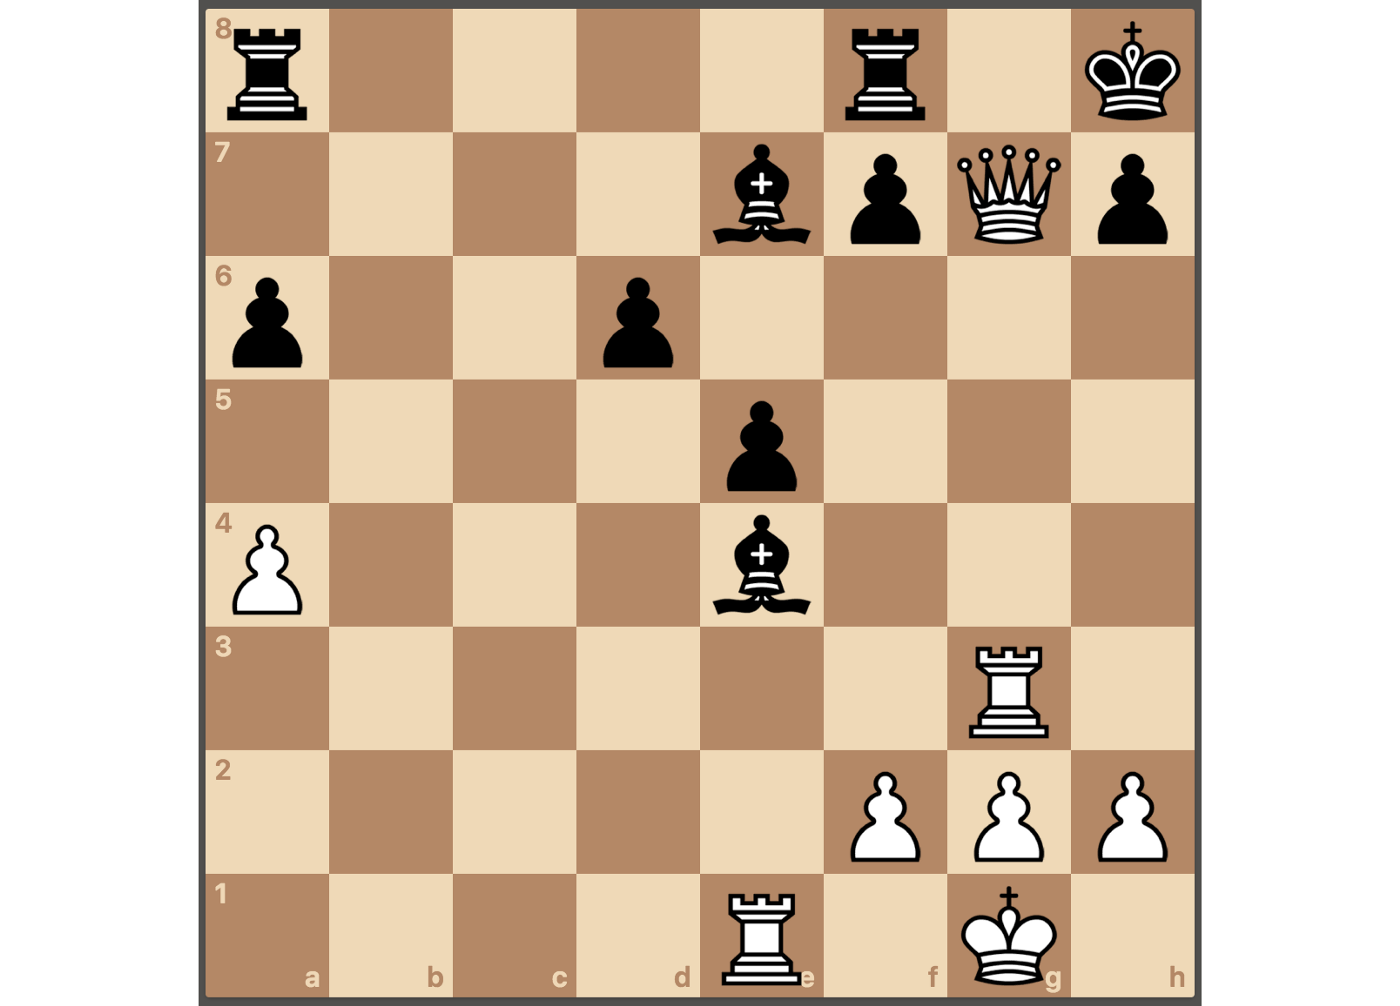 My month-long quest to become a chess master from scratch